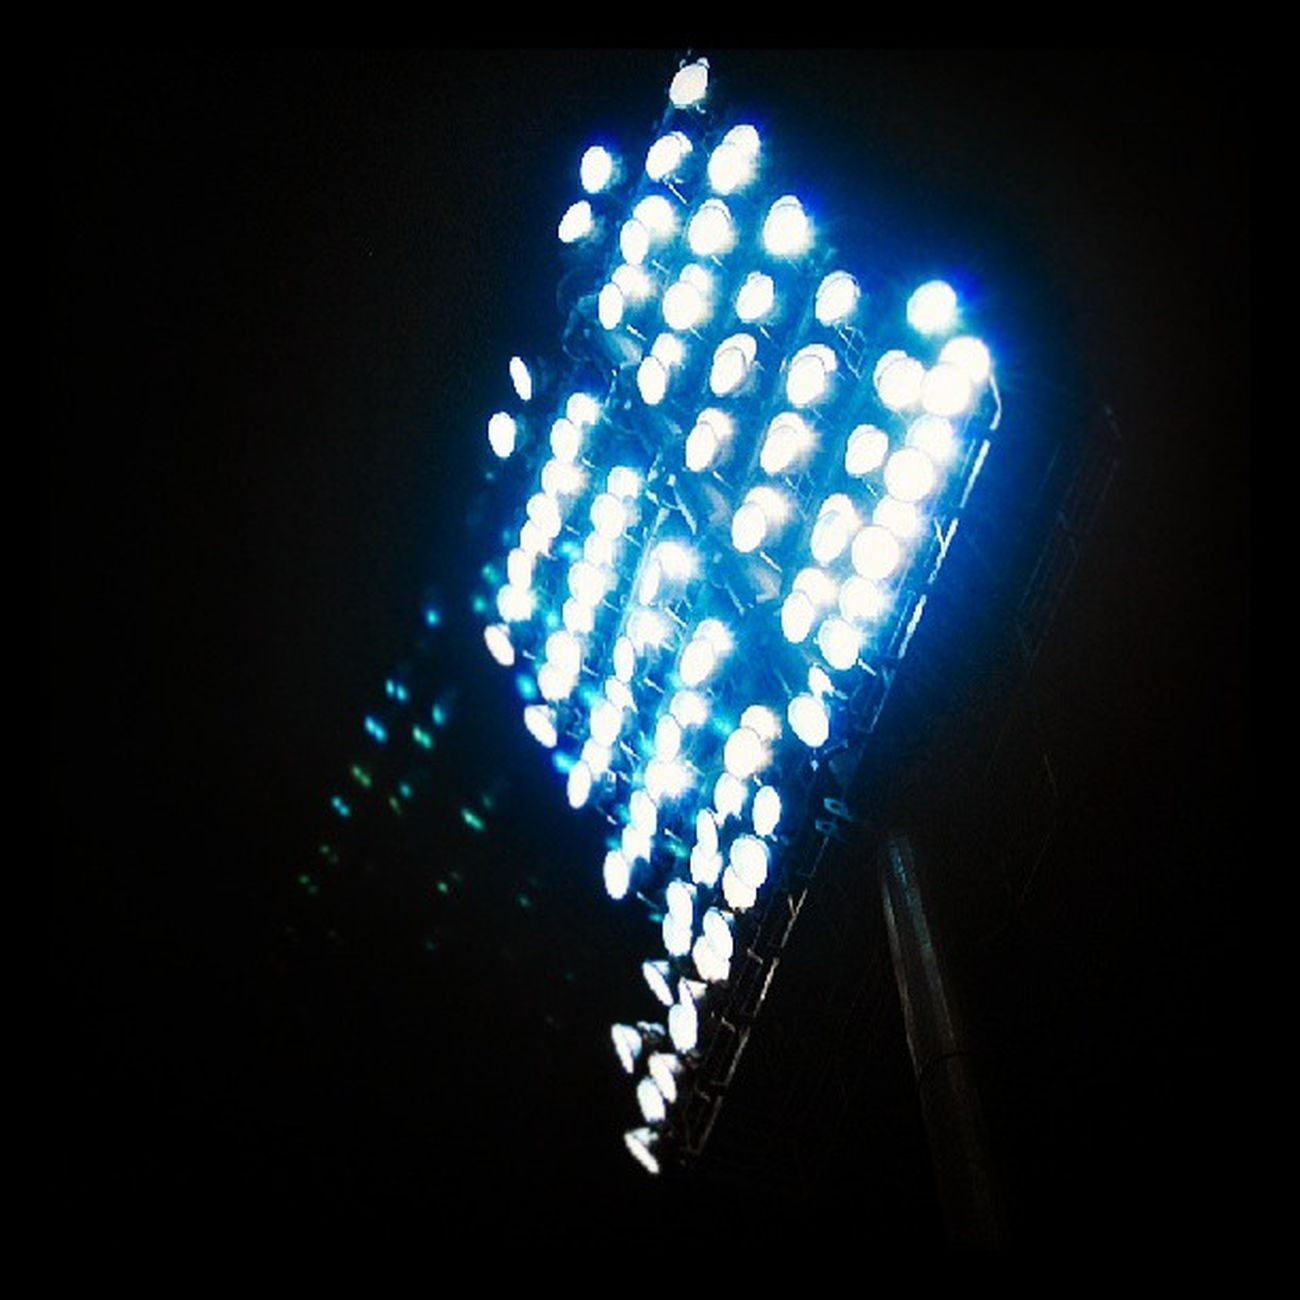 Lights at the Pallekelle International Cricket stadium